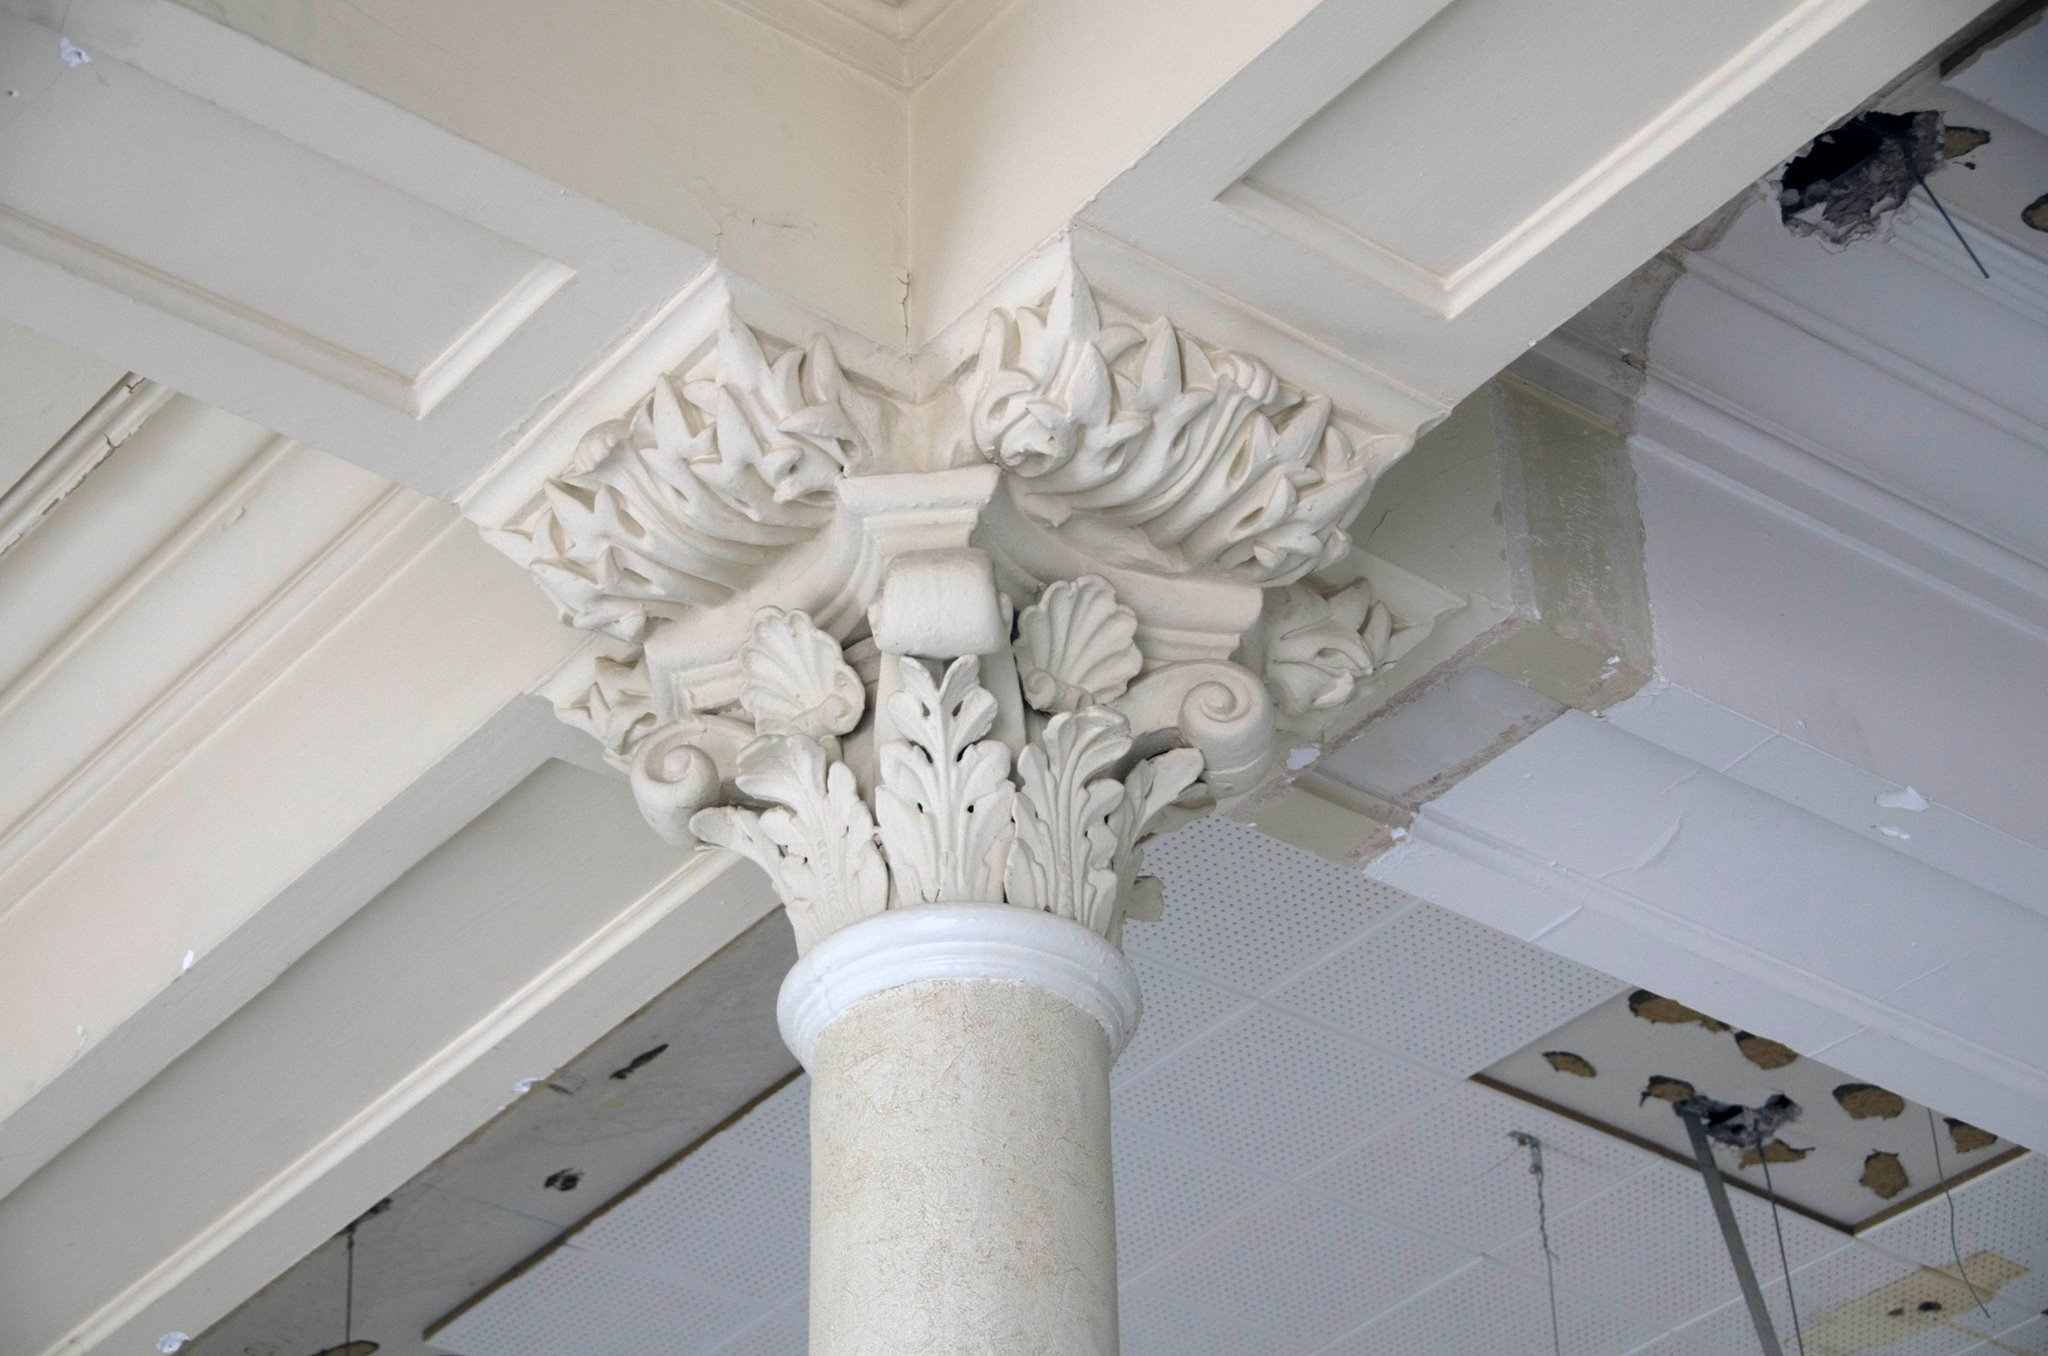 The removal of the dropped ceilings has uncovered hidden archways,coffered ceilings, historic paint, and decorative columns. The invasive infrastructure work necessary to repair the building allows for the restoration of many of these elements.